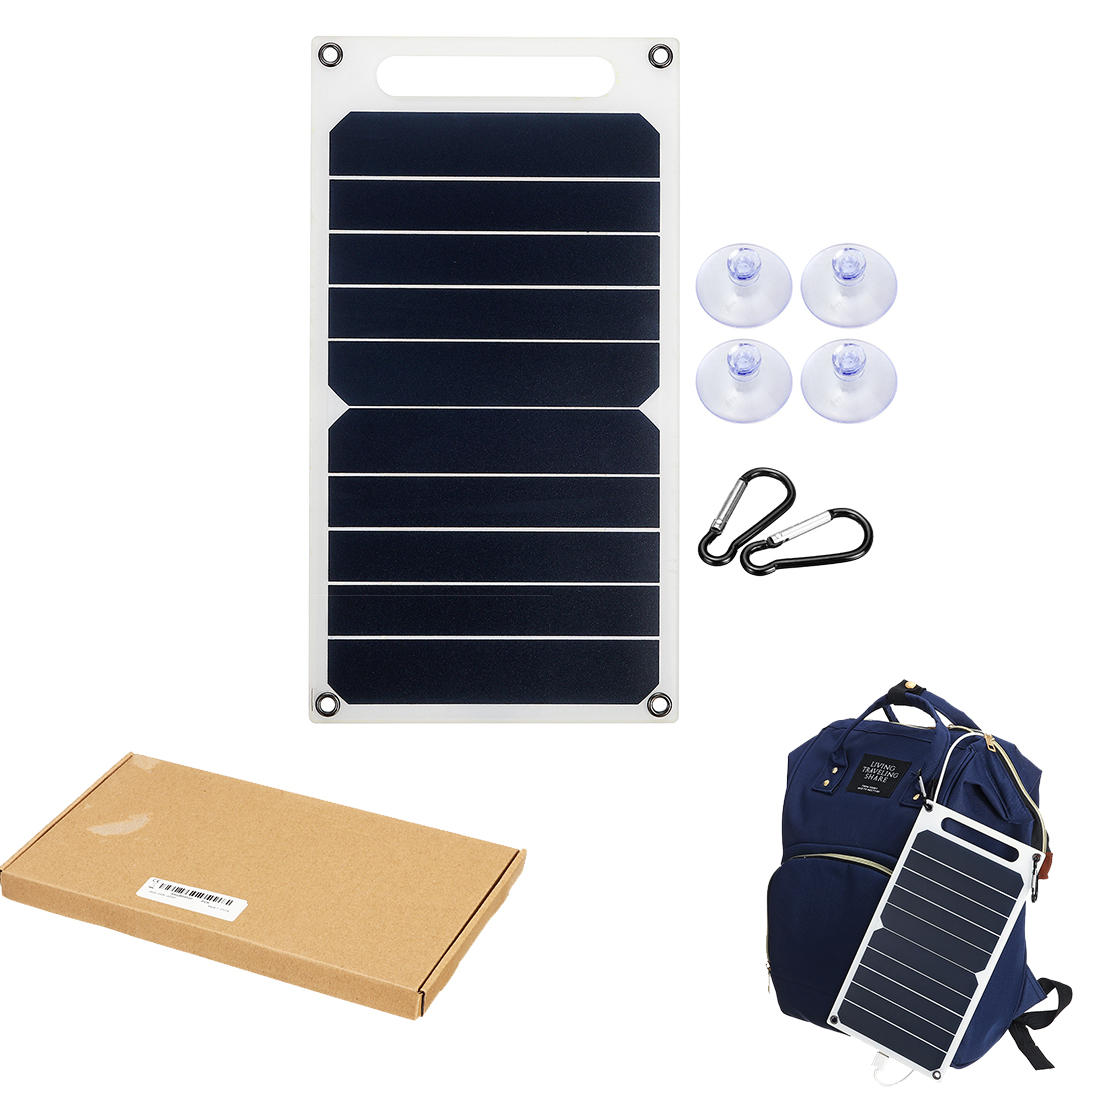 6W 6V 260x140x2.5mm S0506 Portable Semi-flexible Solar Panel with Back Junction Box Single USB Charger + 4xSucker + 2x C